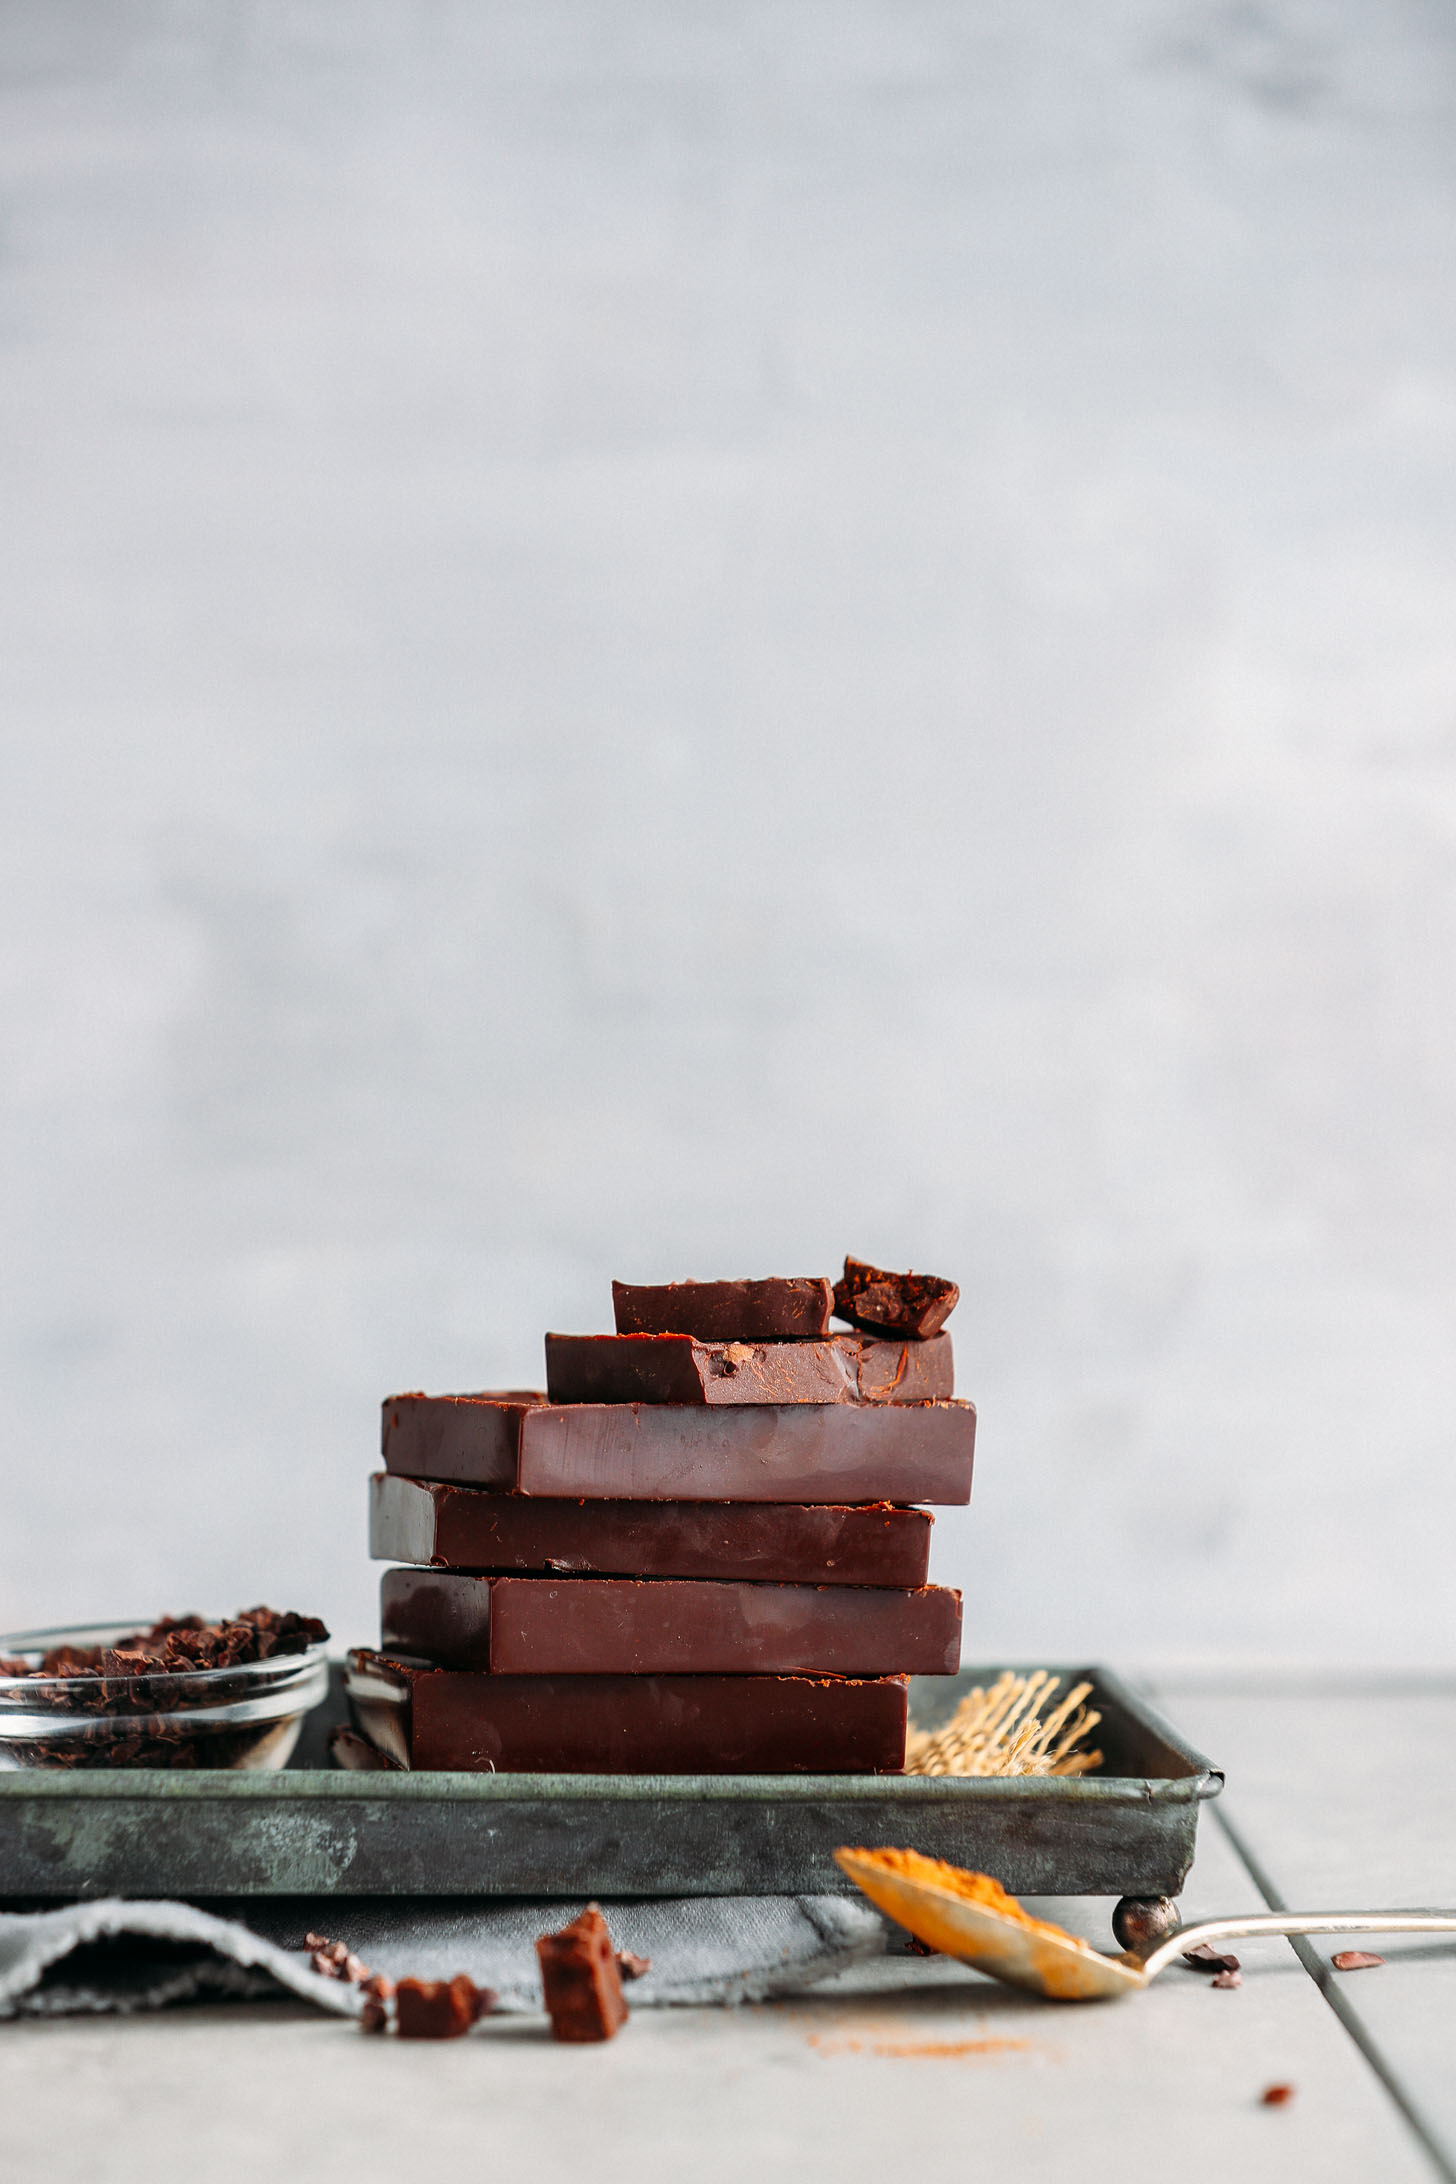 Stack of homemade Vegan Dark Chocolate bars on a metal platter